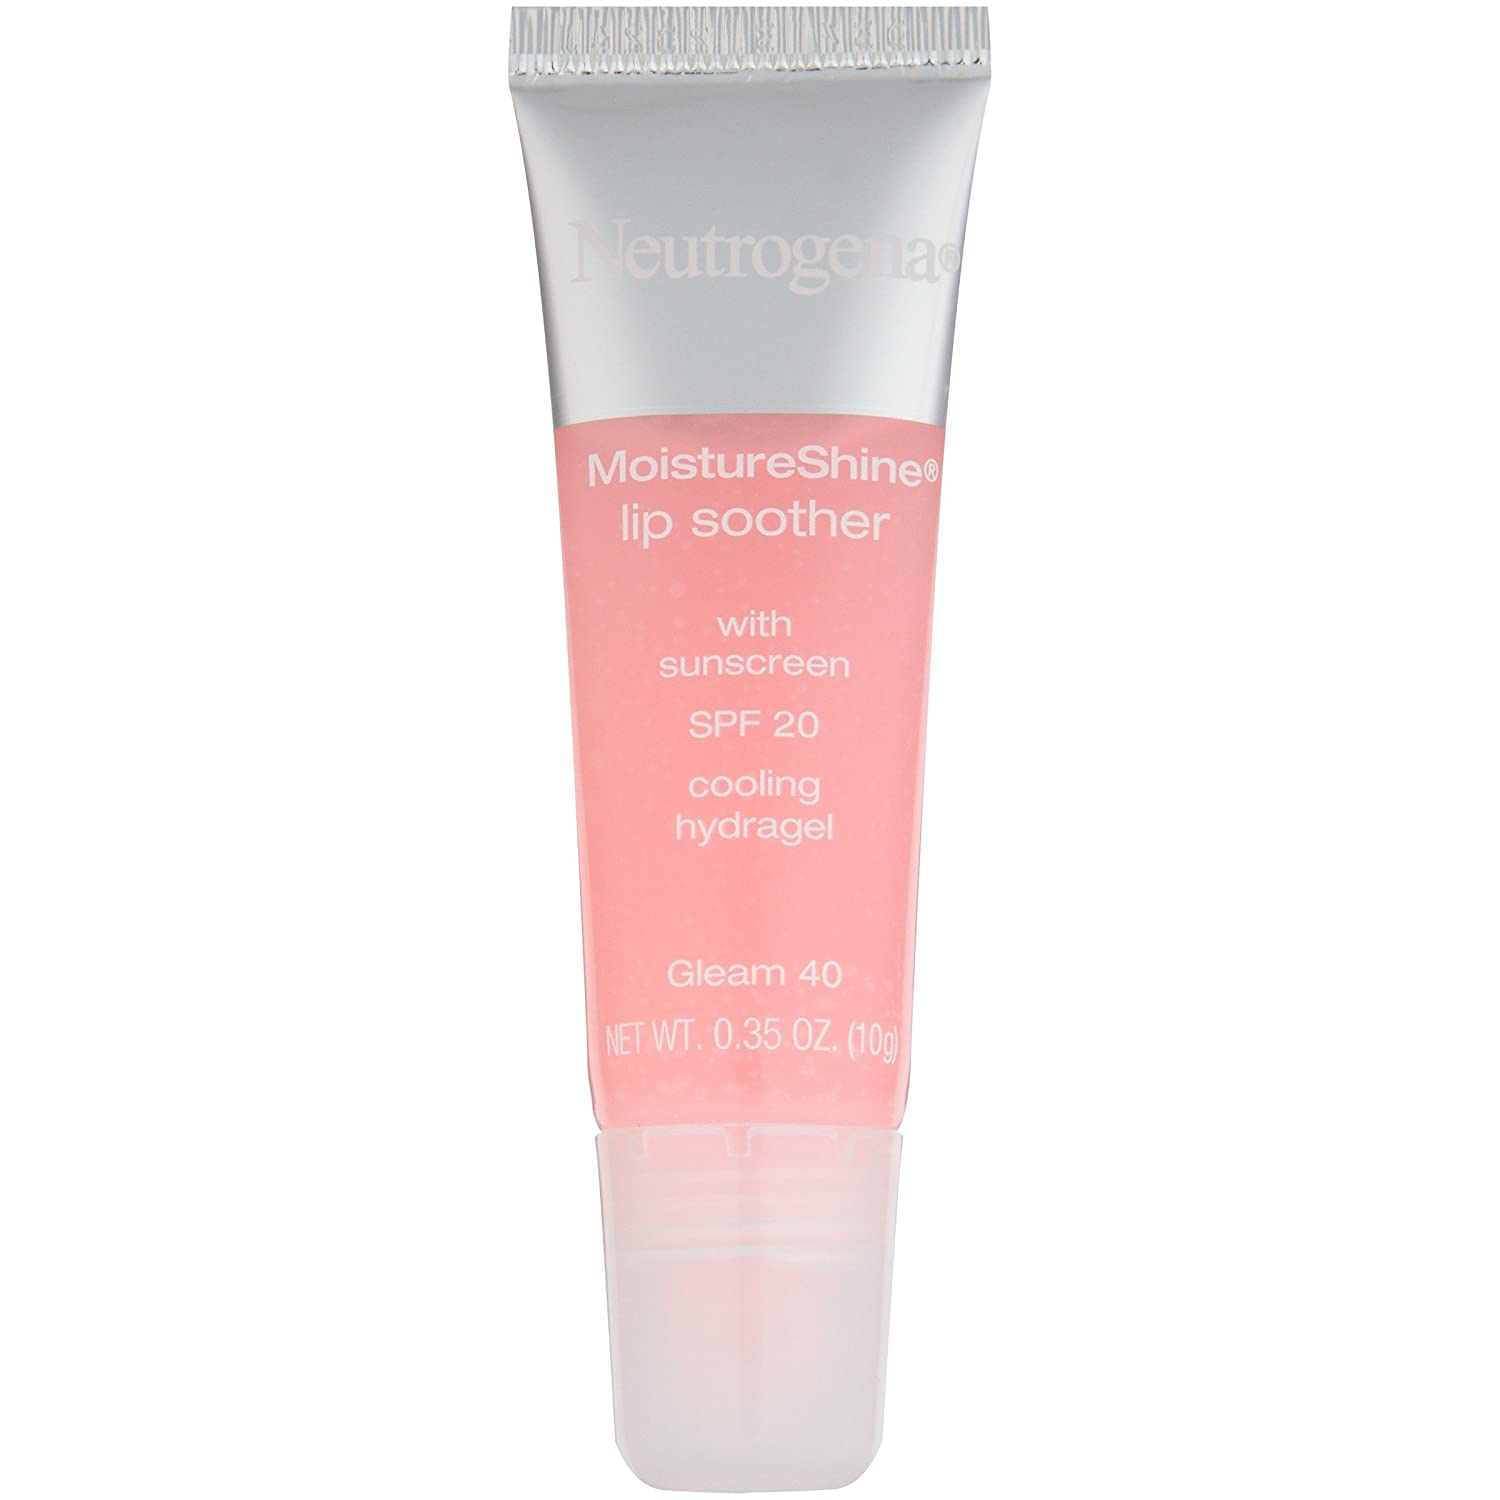 Neutrogena Moistureshine Lip Soother Gloss, Spf 20, Gleam 40, .35 Oz.